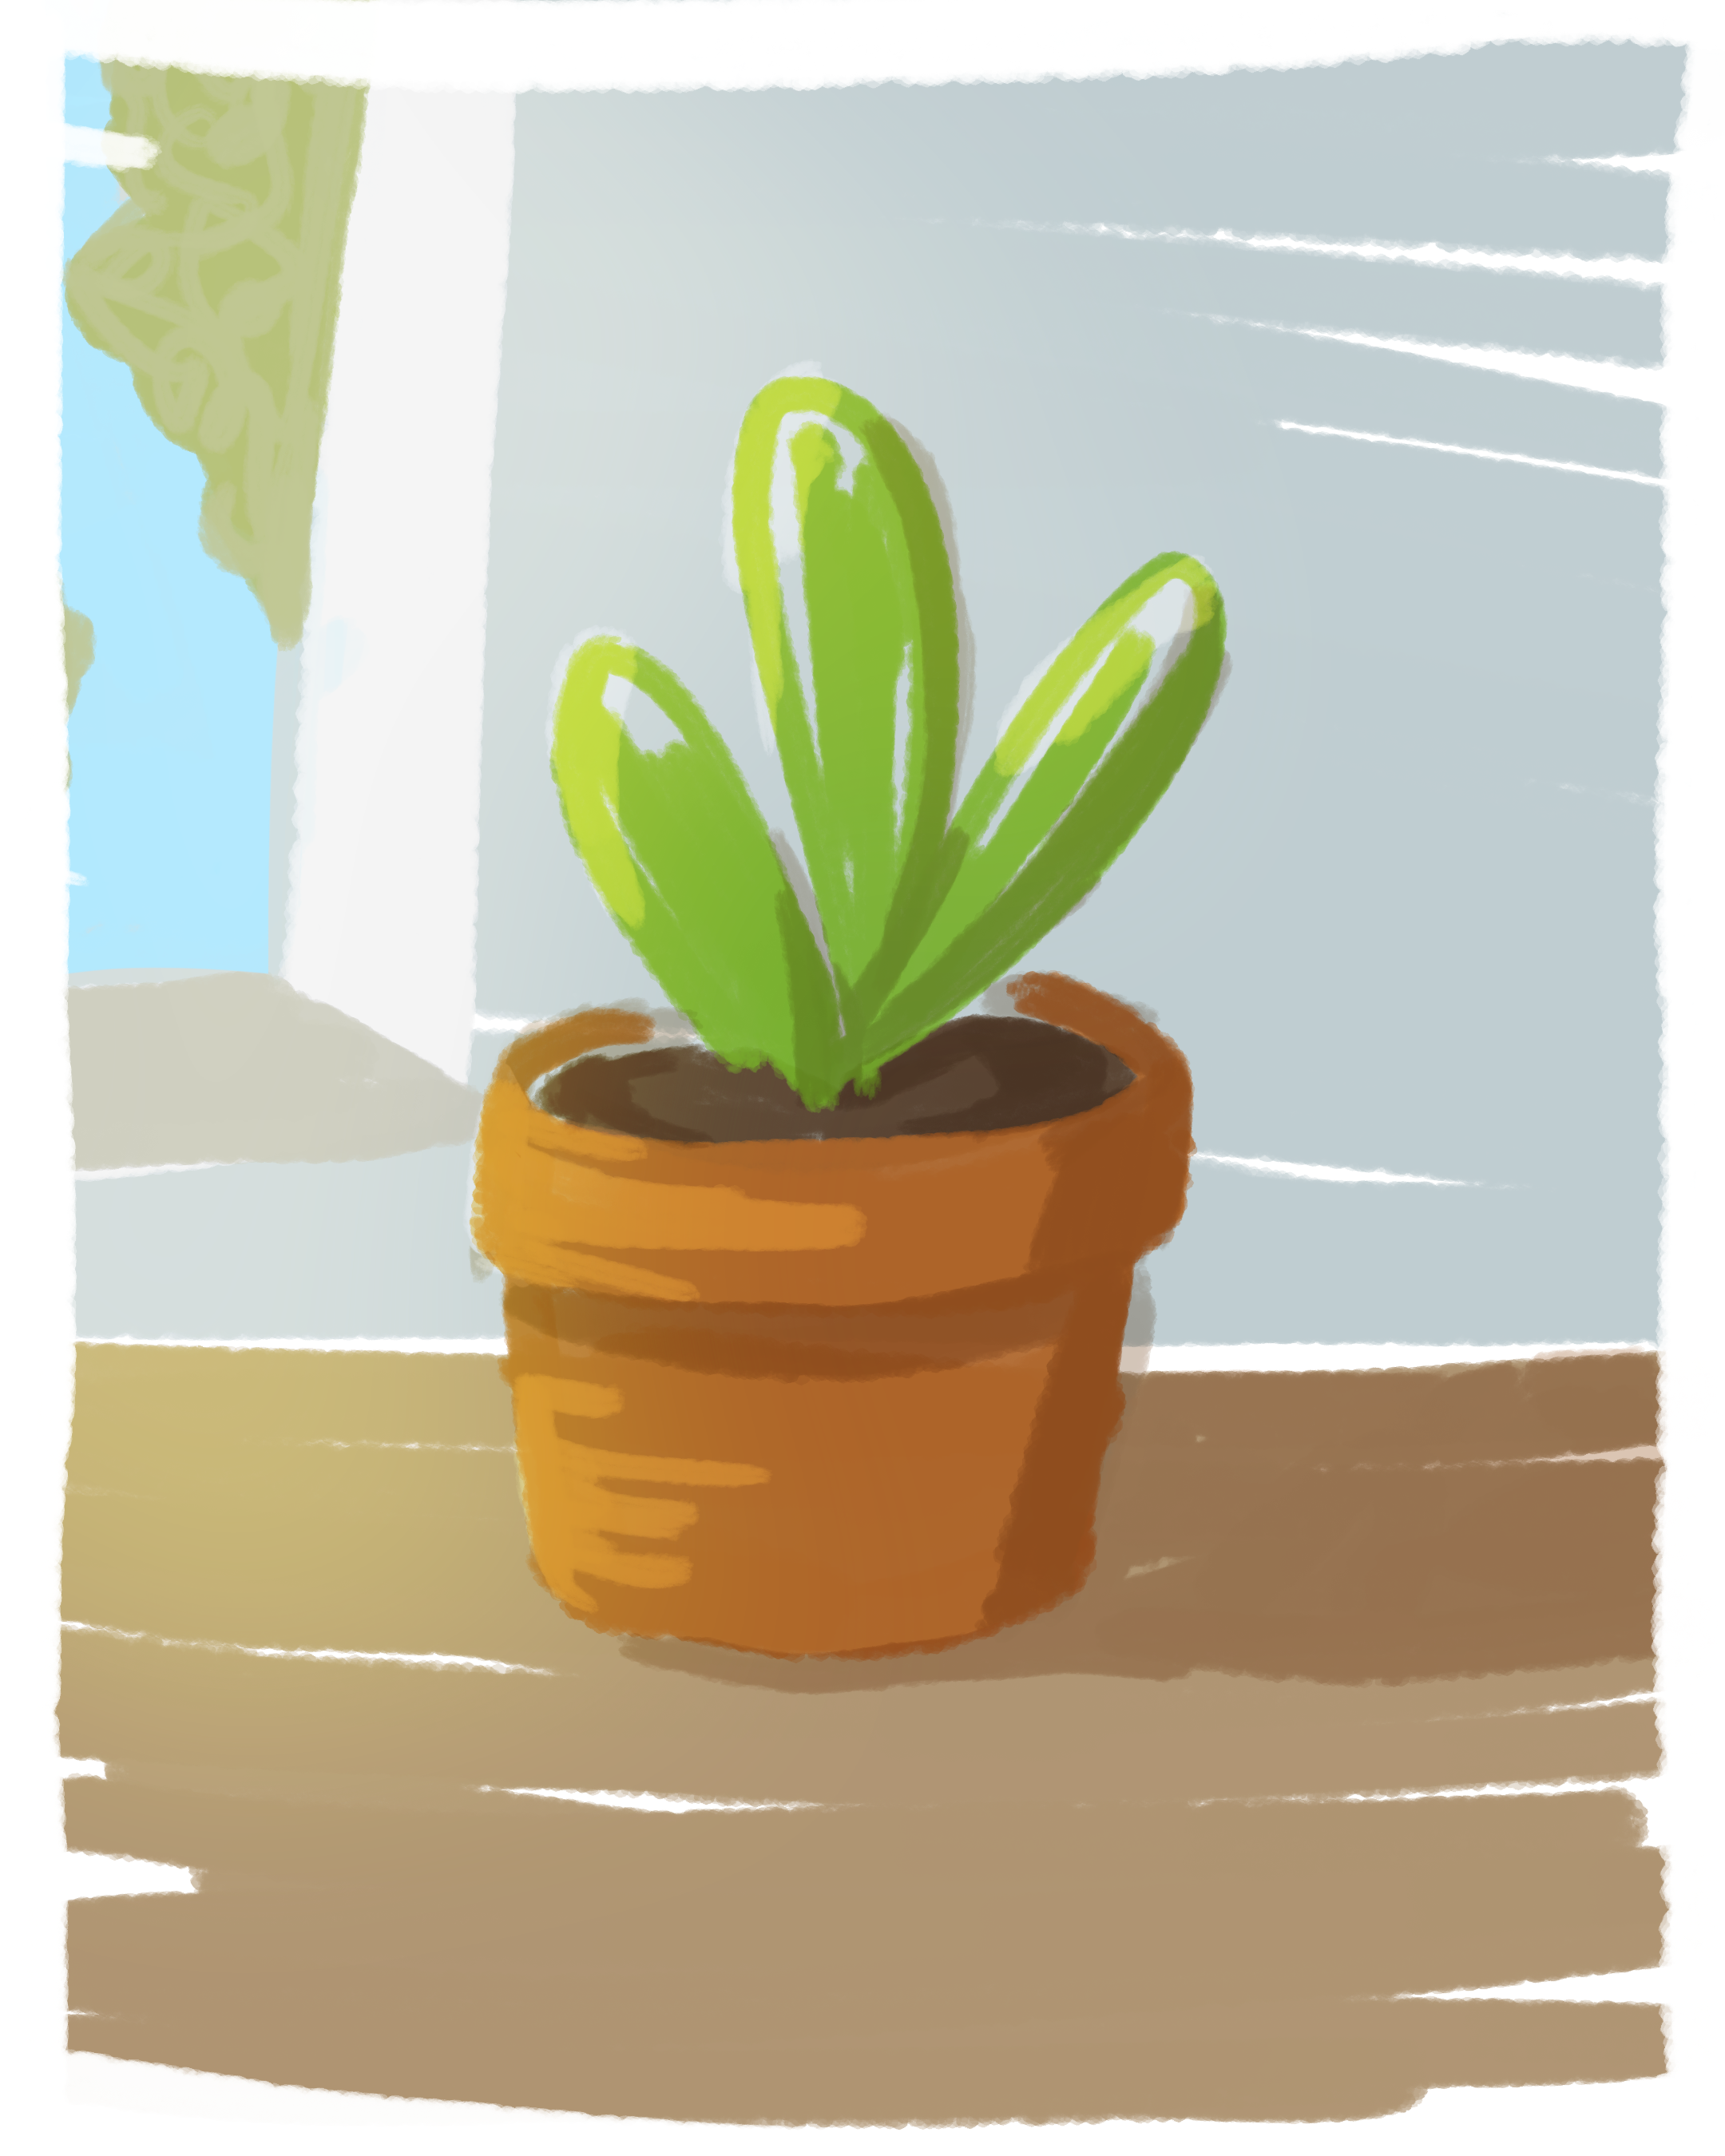 85 planty.png